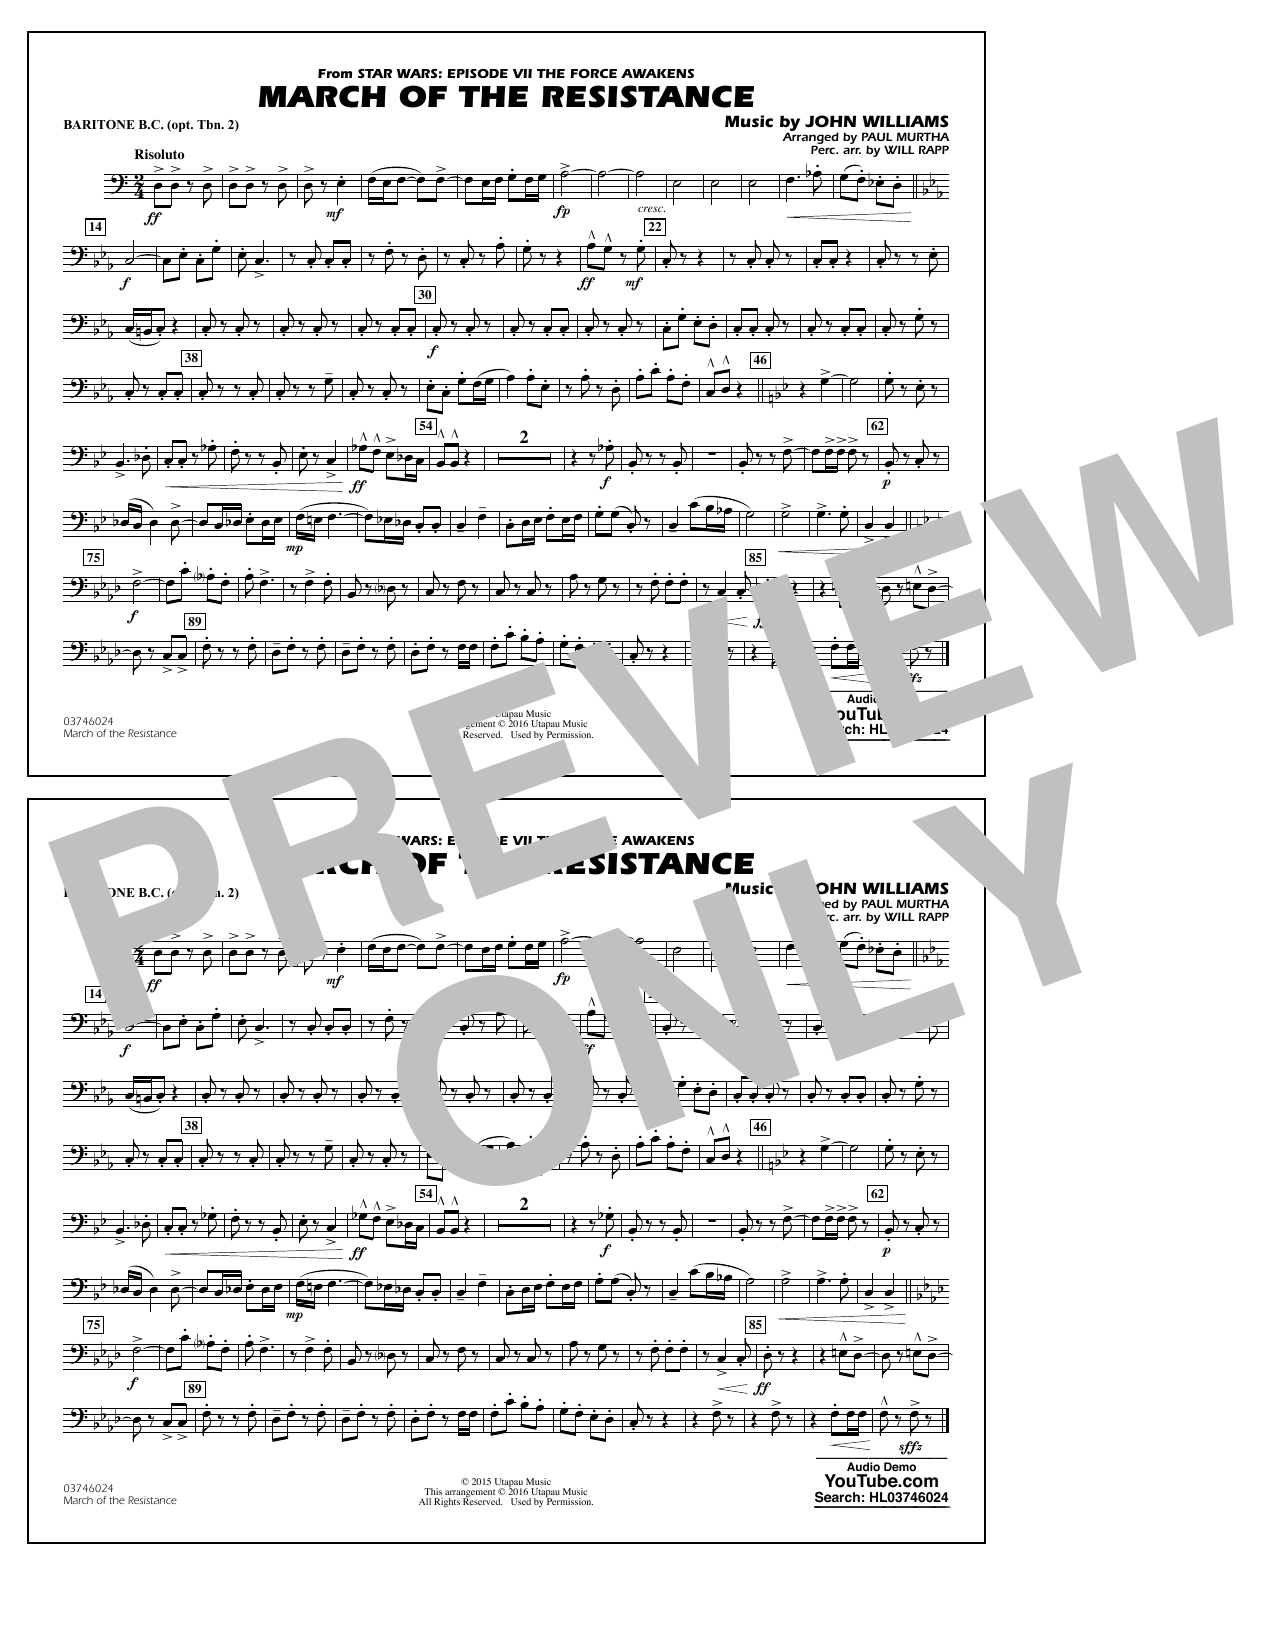 The March of the Resistance (from Star Wars: The Force Awakens) - Baritone B.C. (Opt. Tbn. 2) (Marching Band)